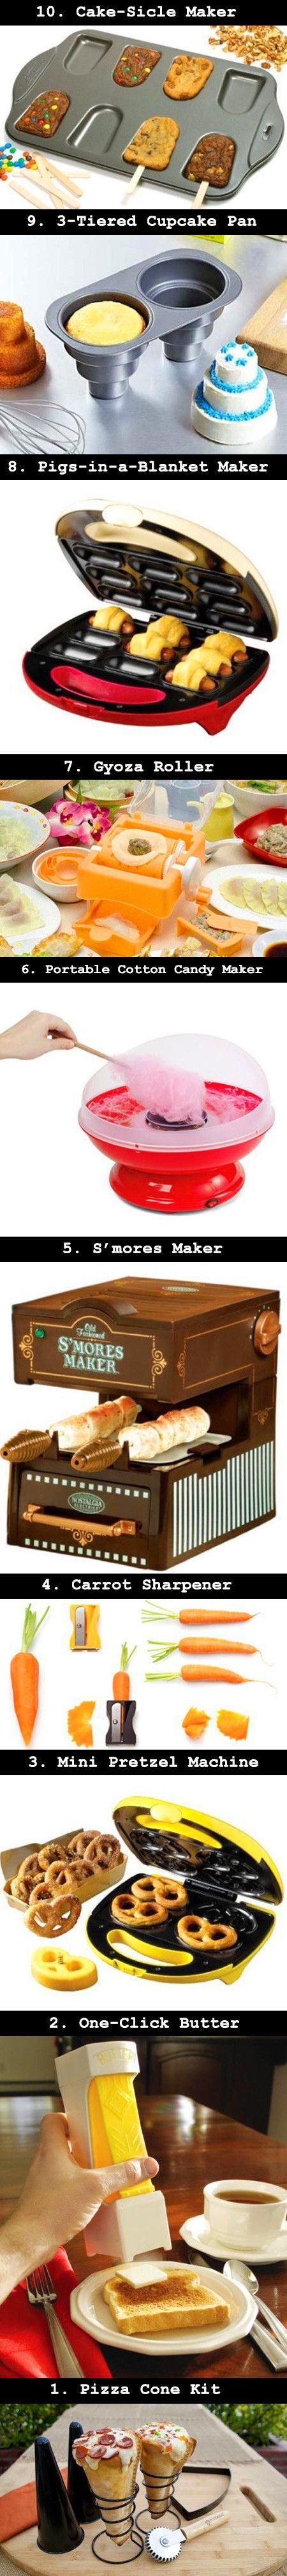 10 Awesome Kitchen Gadgets